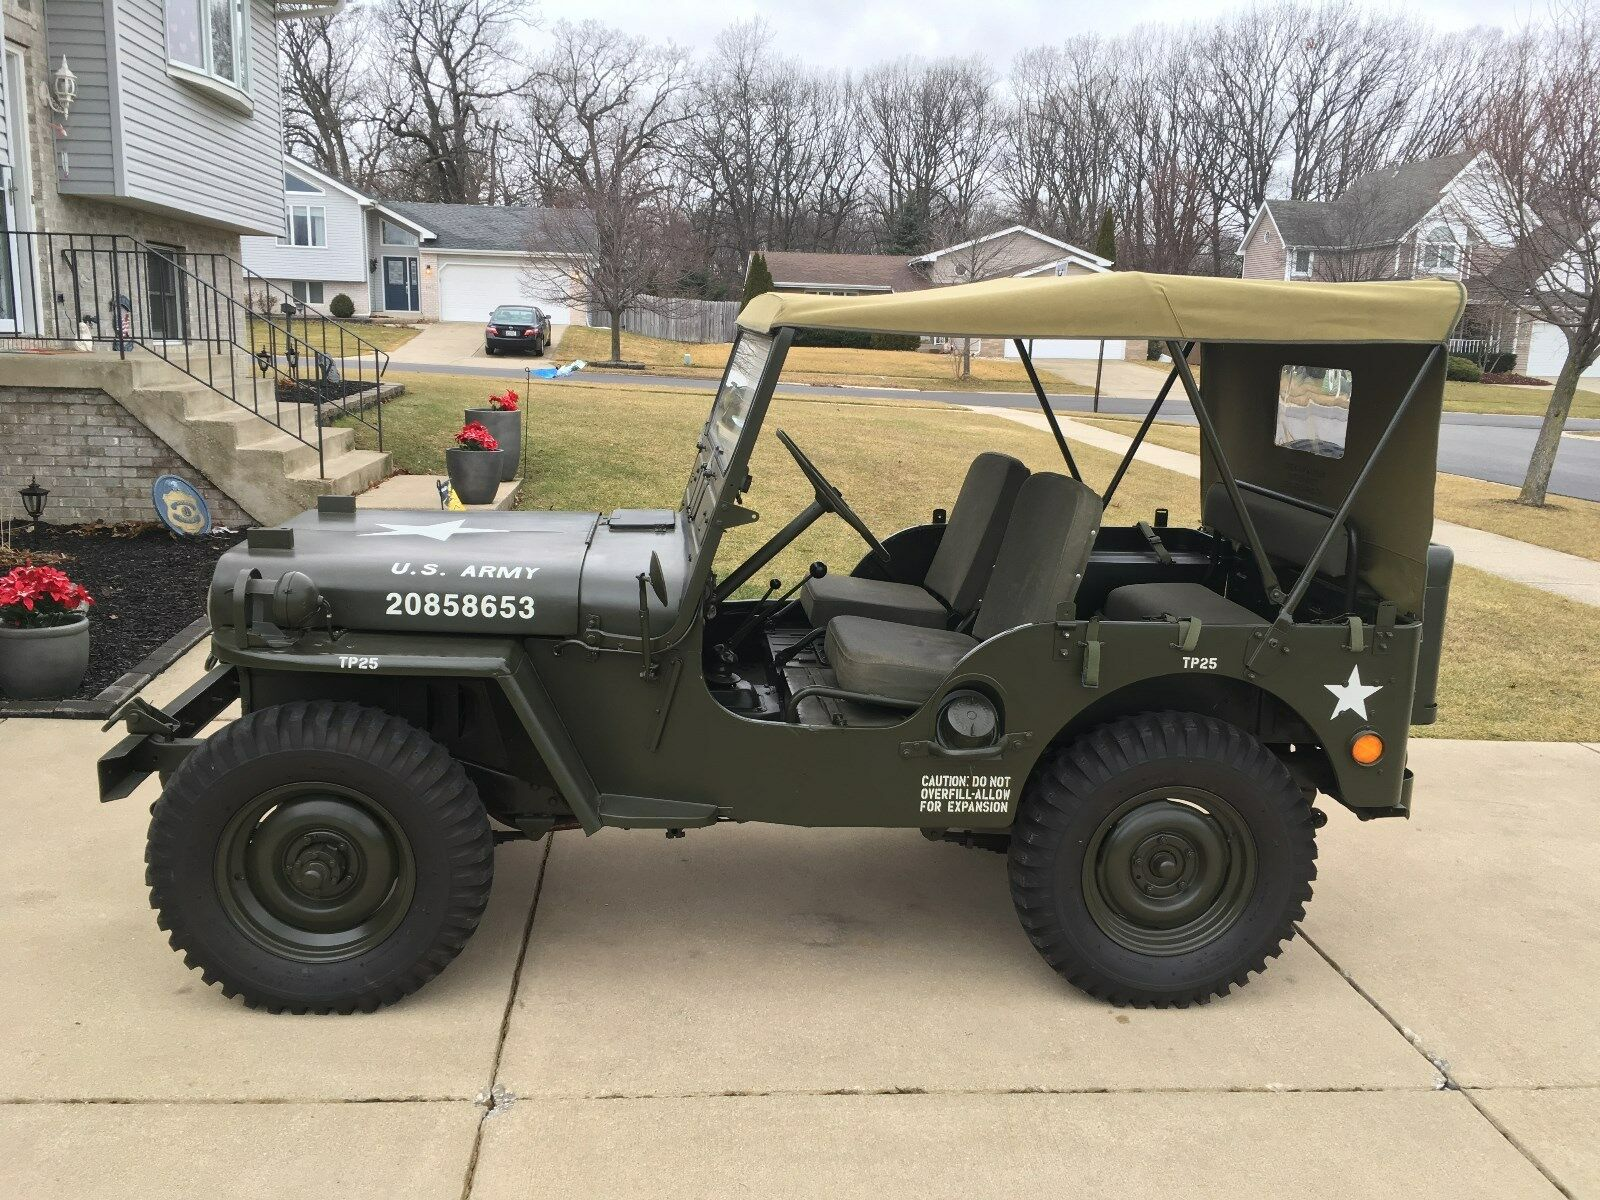 1952 willys overland m38 jeep used willys overland for sale in crown point indiana search. Black Bedroom Furniture Sets. Home Design Ideas